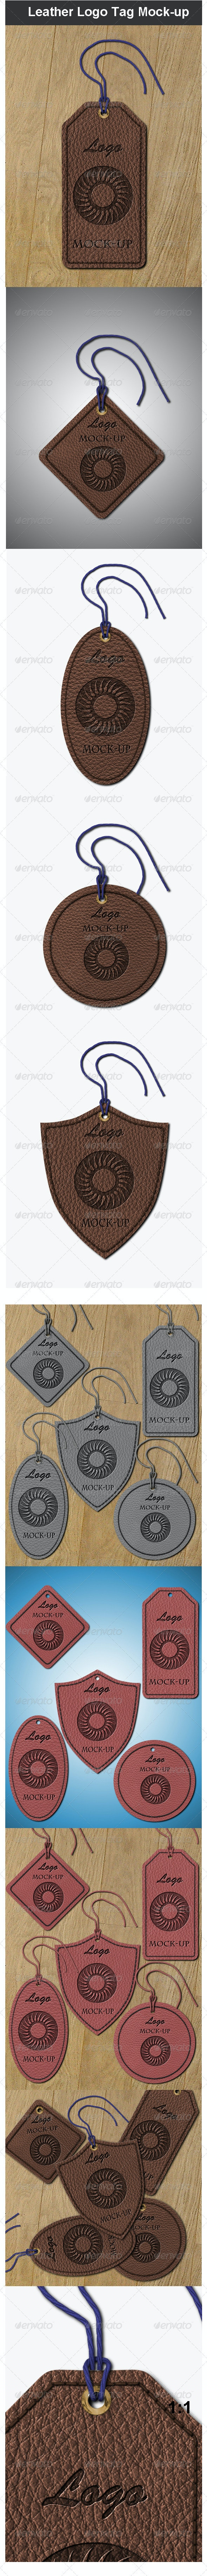 leather logo tag mock up by maxtecb graphicriver https graphicriver net item leather logo tag mockup 3774053